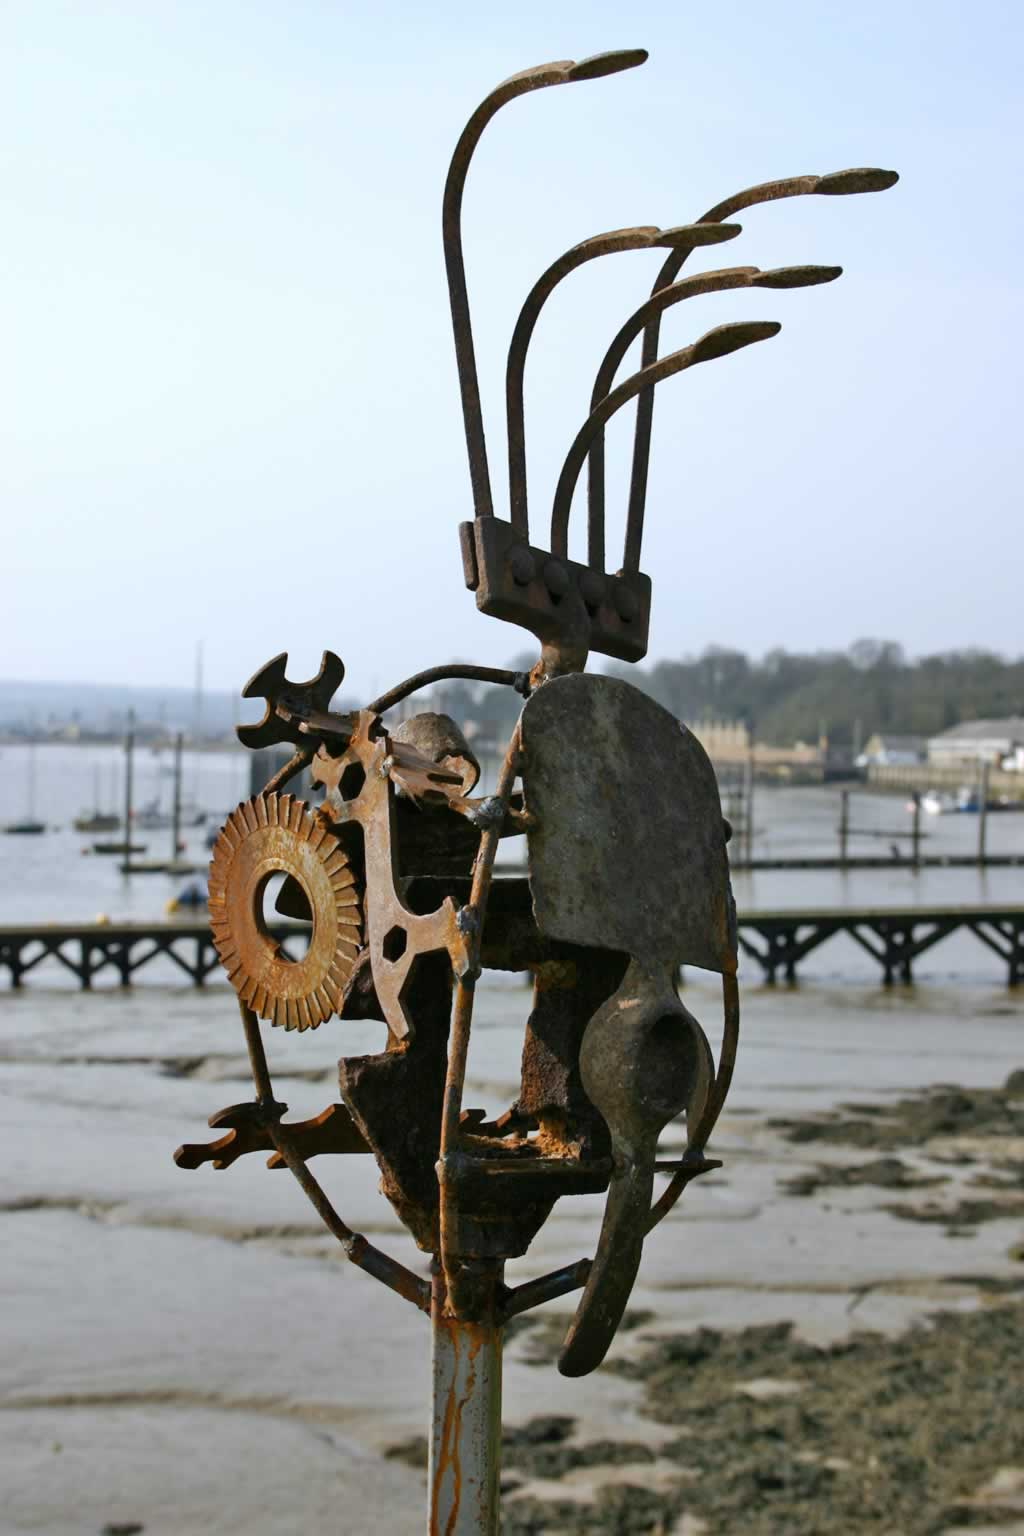 Medusa (abstract sculpture) by sculptor Ian Campbell-Briggs